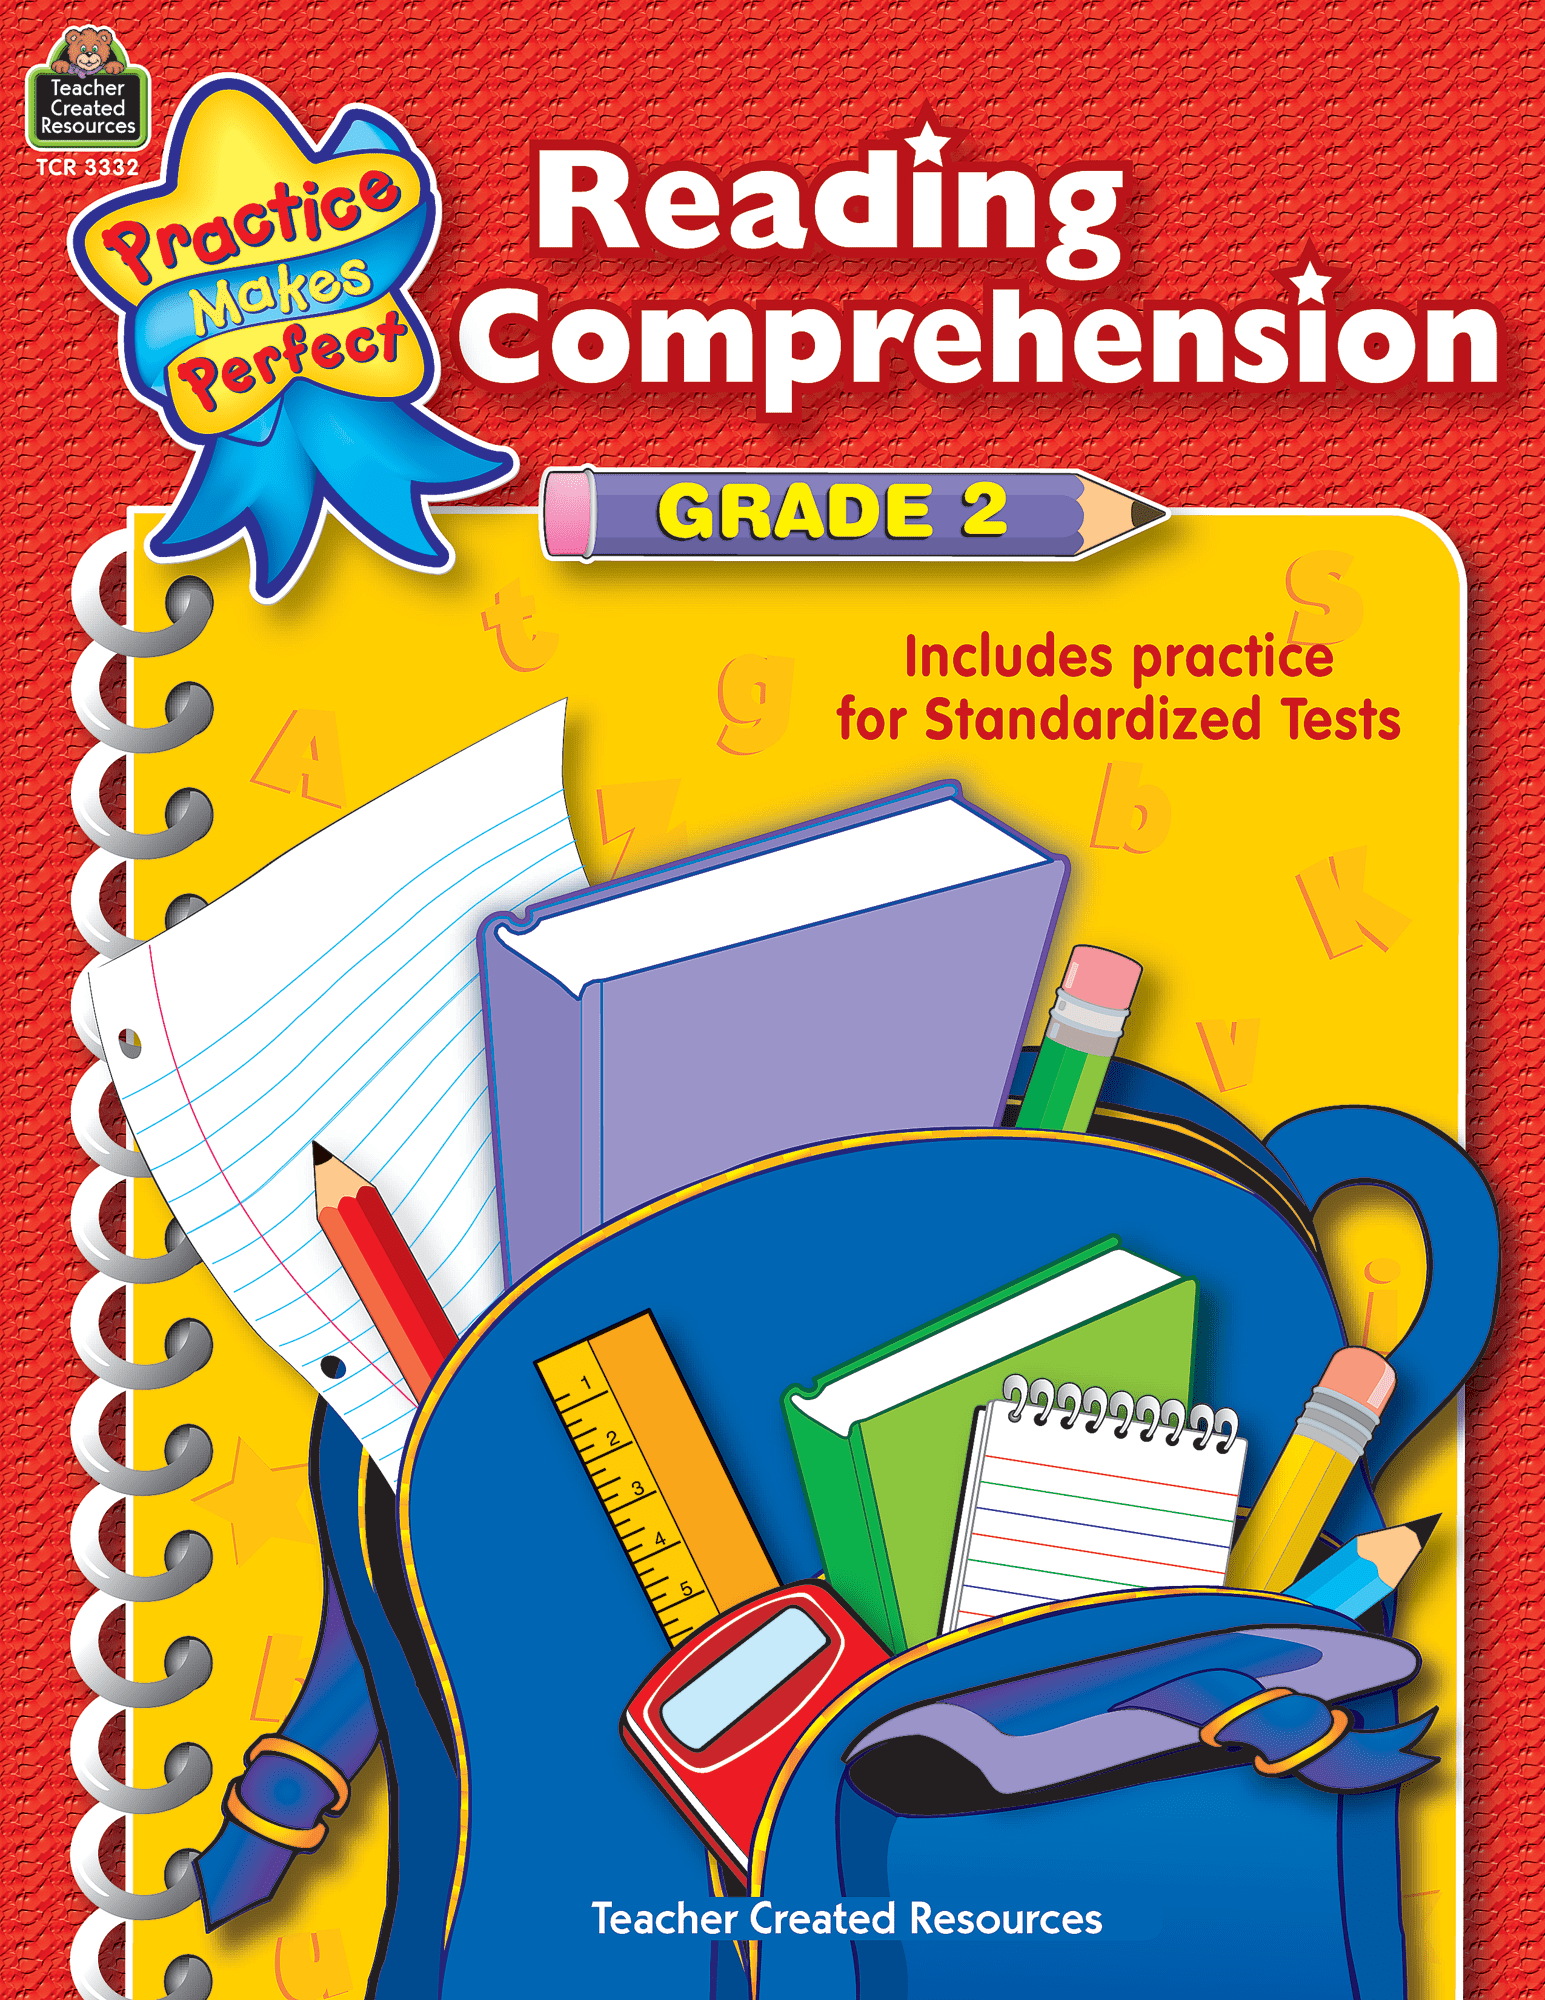 hight resolution of Reading Comprehension Grade 2 - TCR3332   Teacher Created Resources